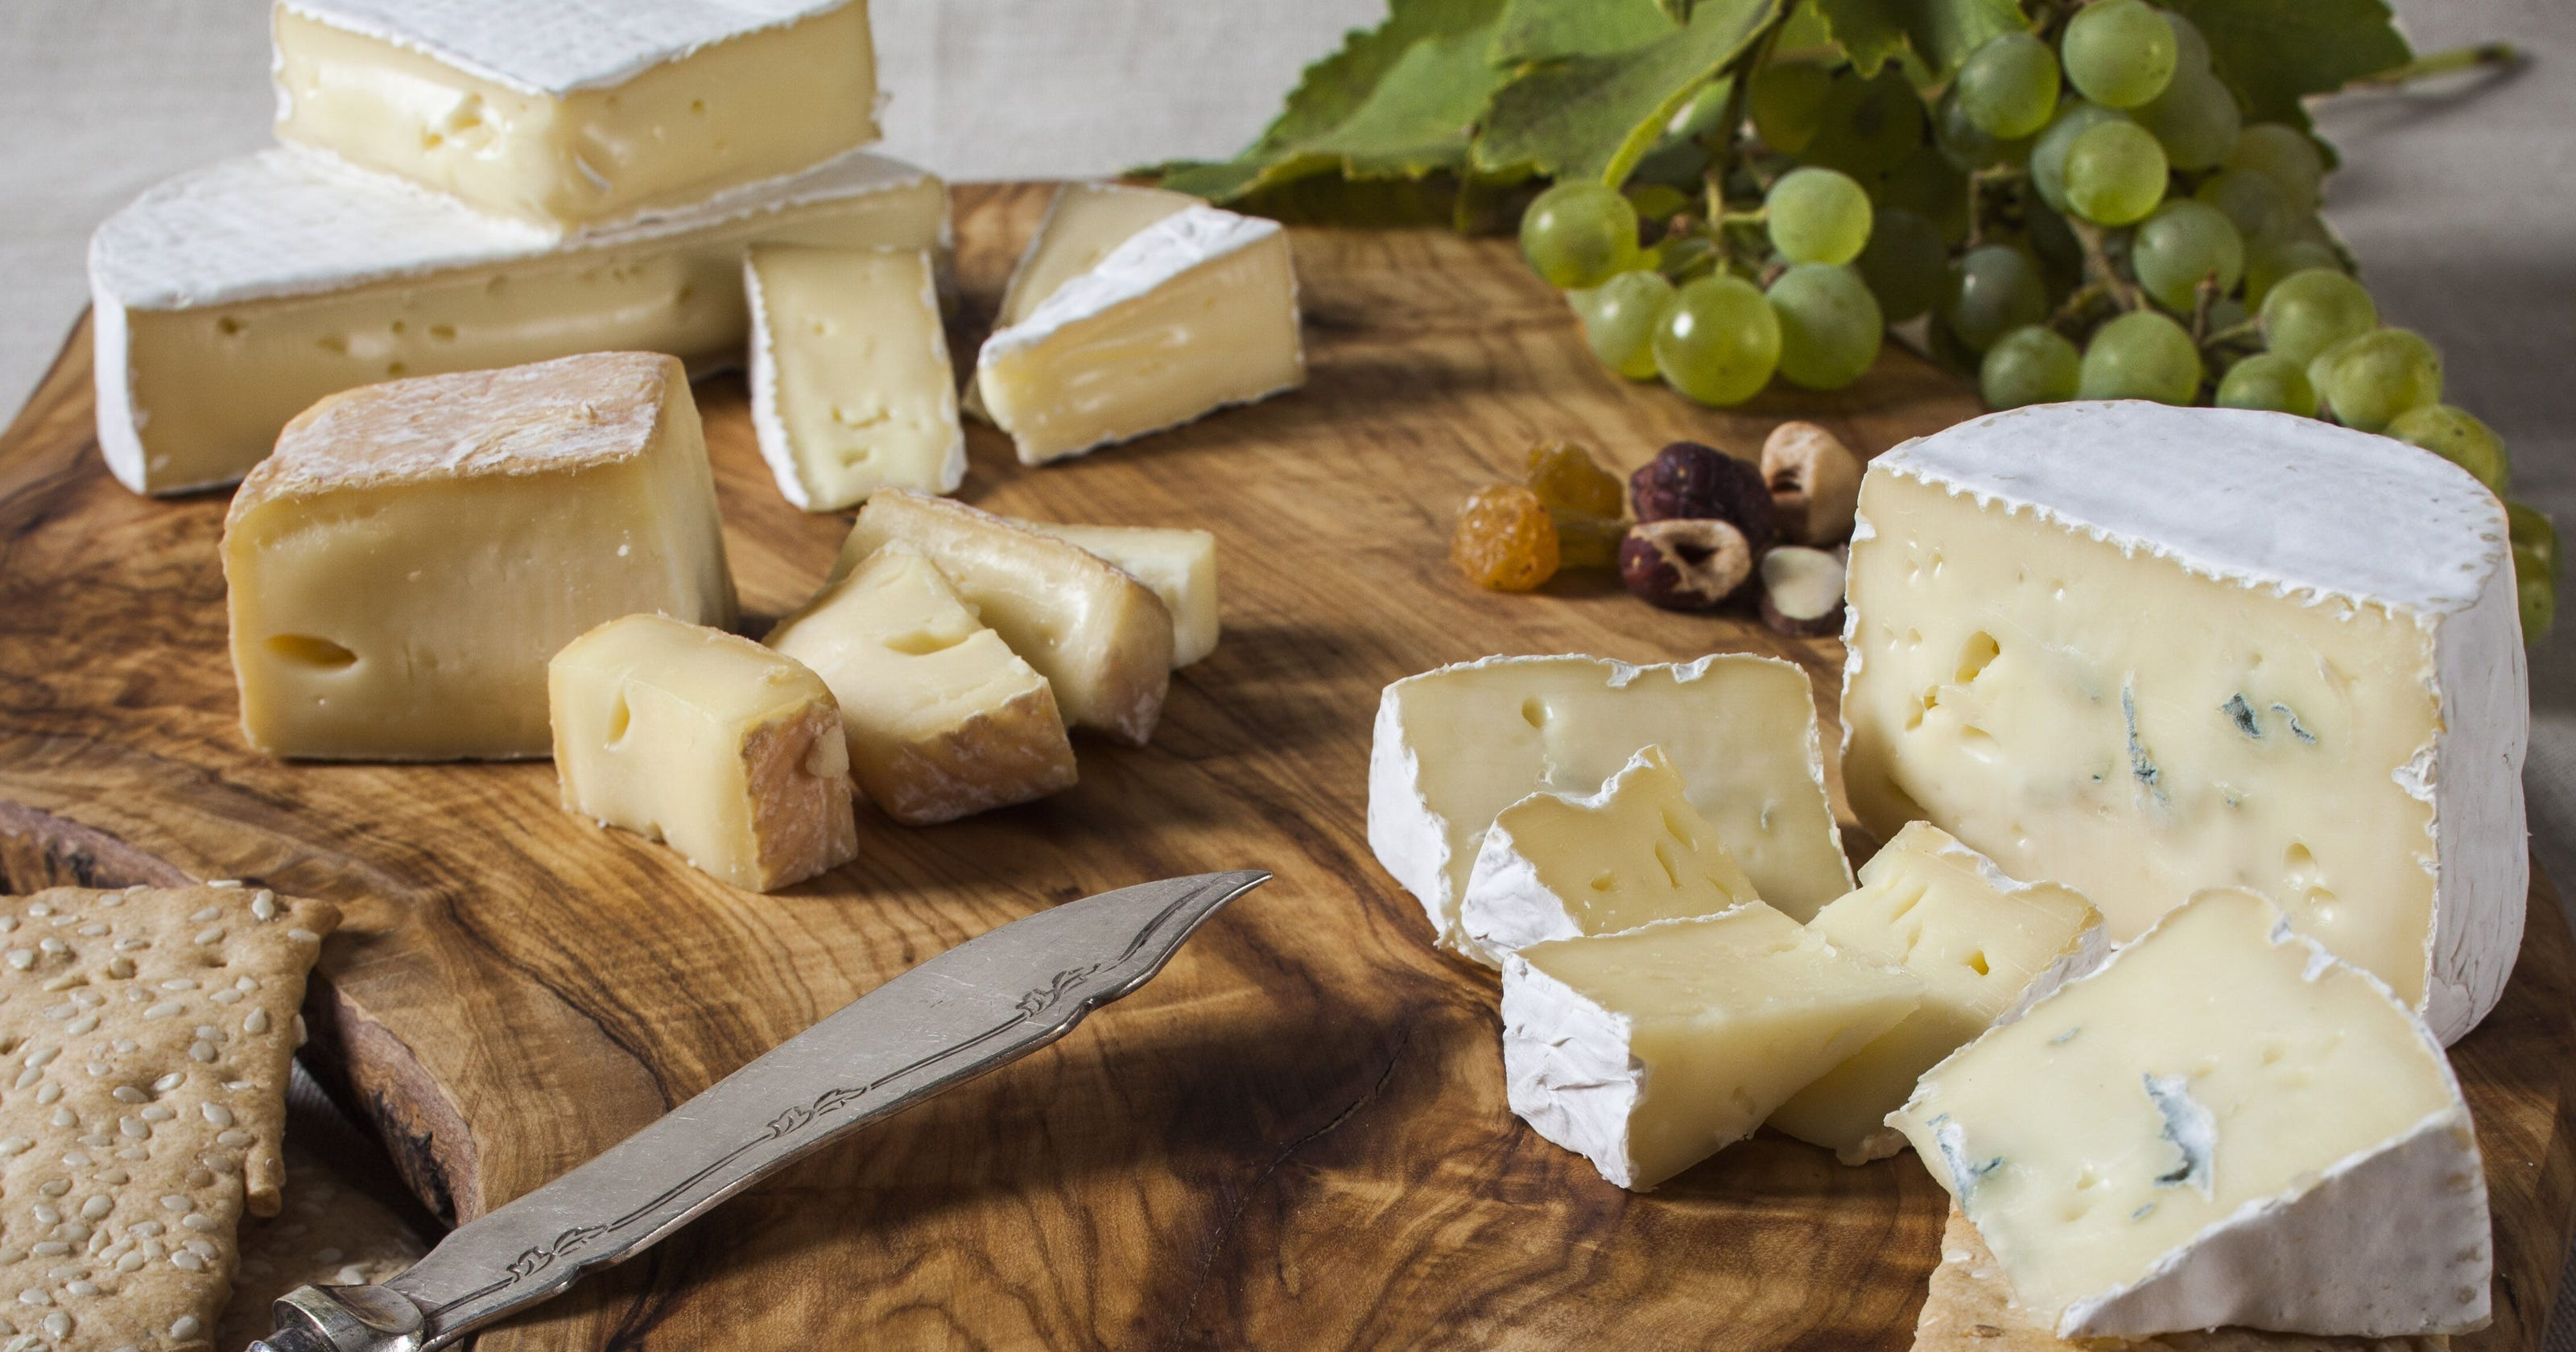 Please 'eat cheese' and more of it, French group says as dairy sales slump amid coronavirus